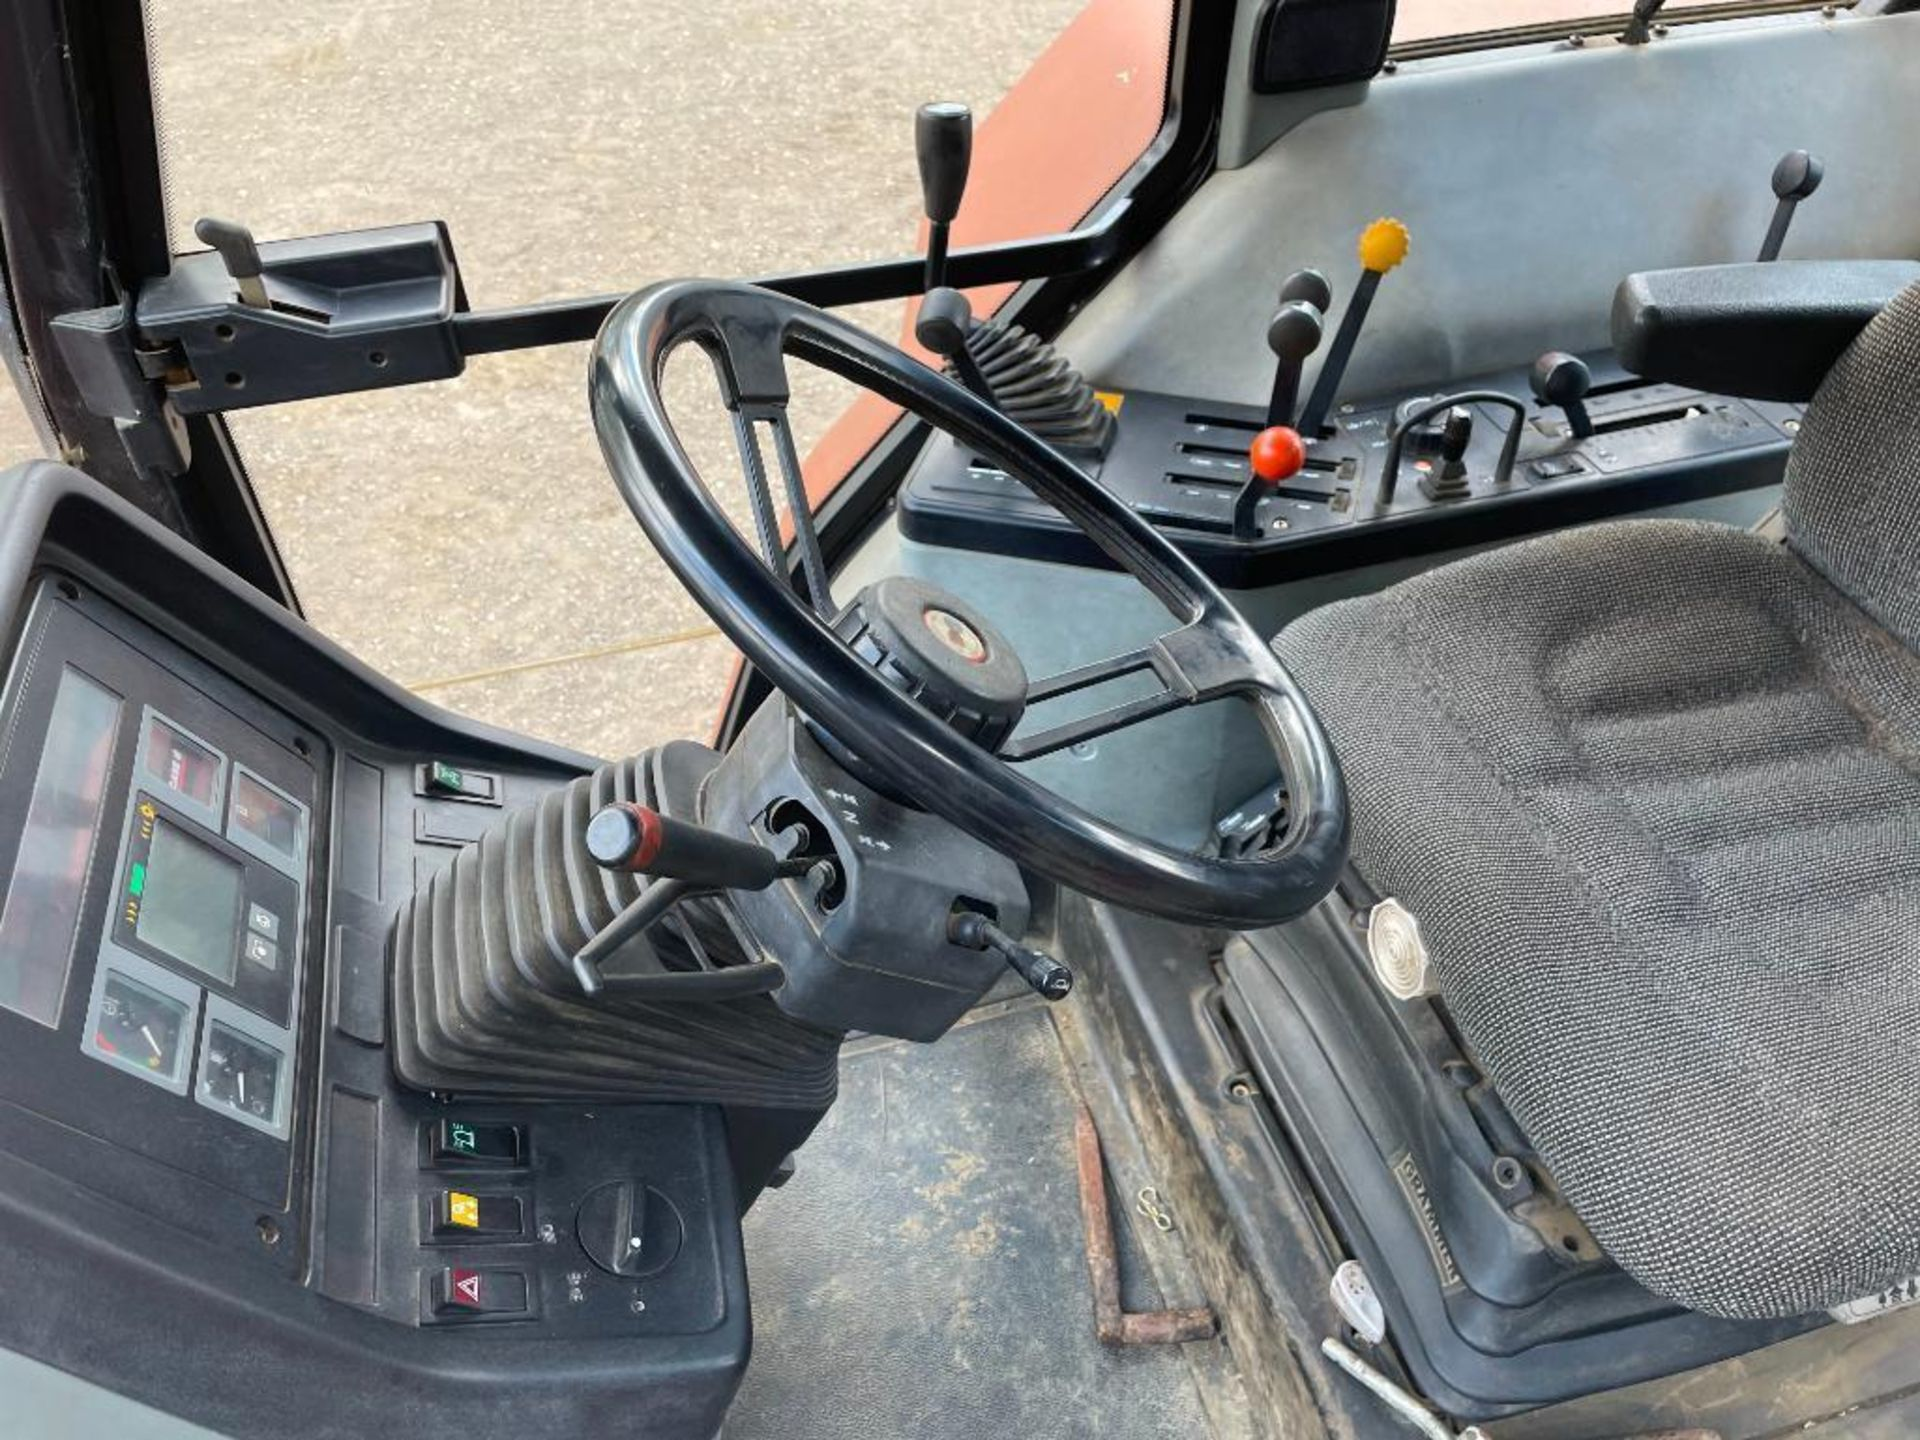 1997 Case IH 5150 Maxxum Plus Powershift 4wd tractor with 2 spools, PUH and front wafer weights on 1 - Image 13 of 13